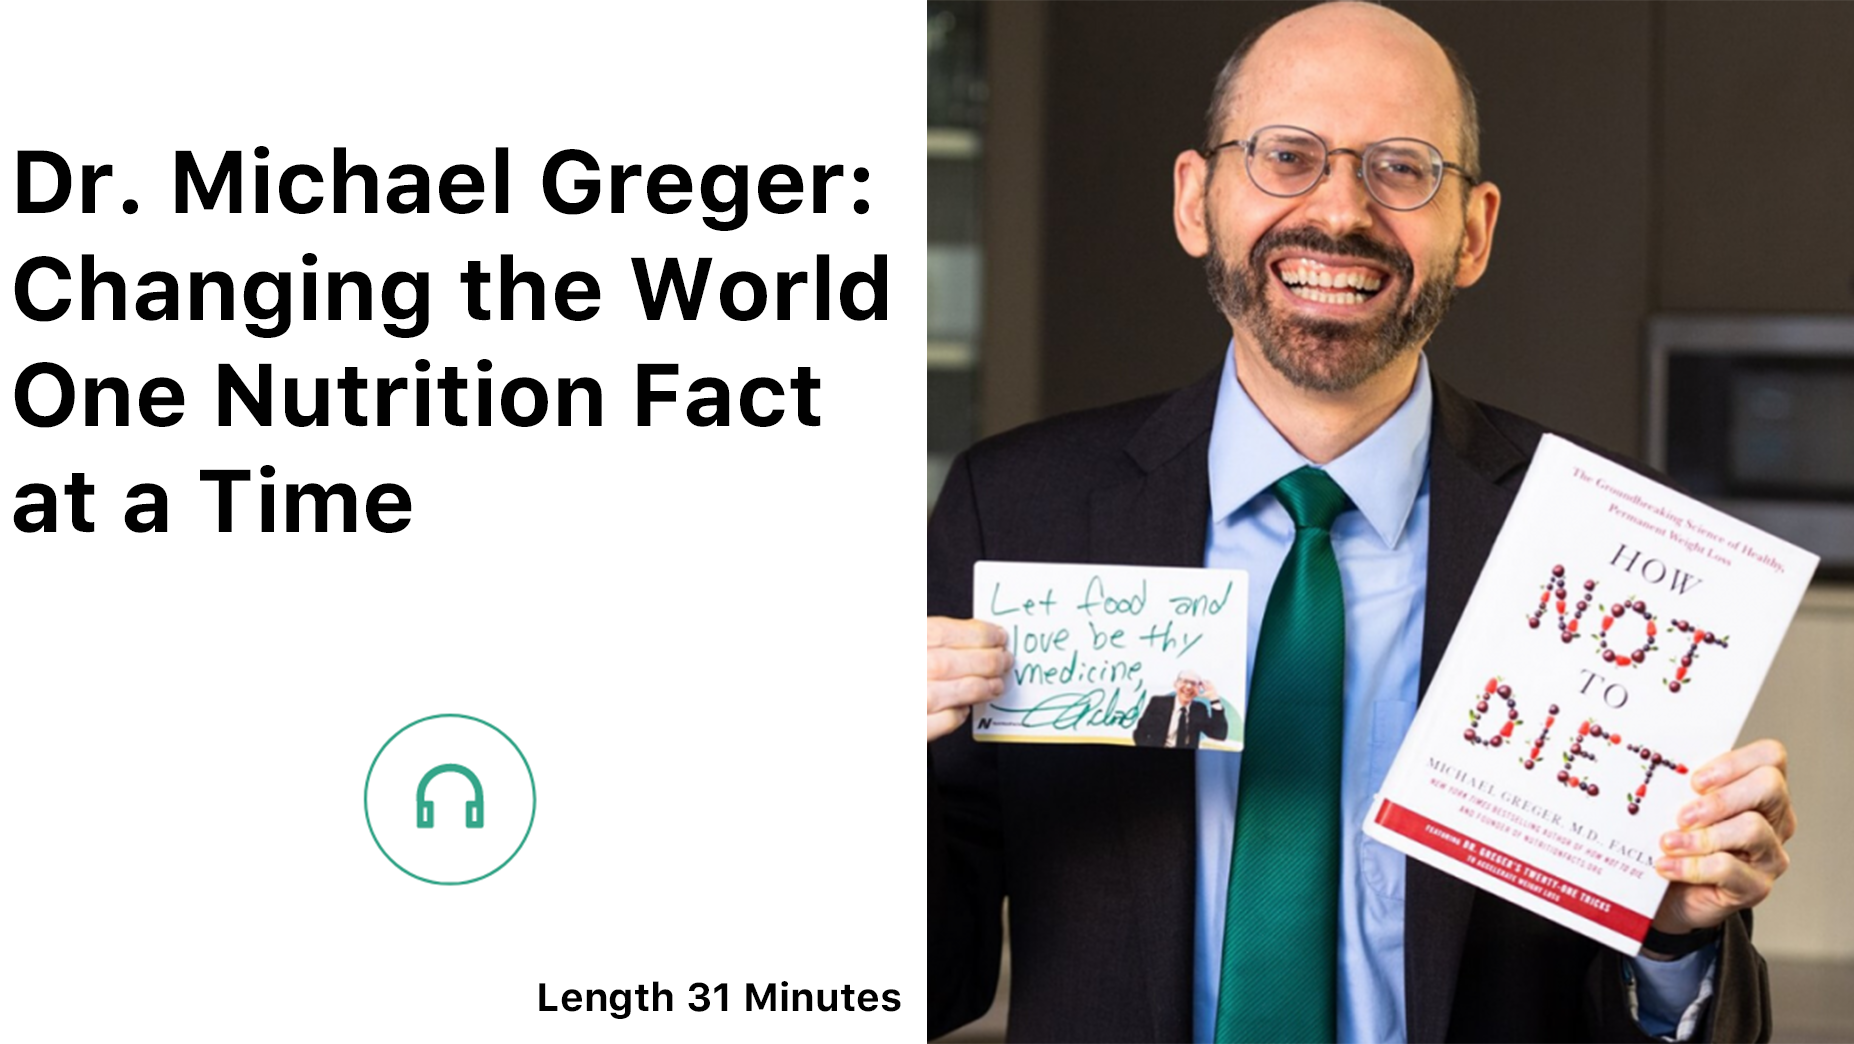 Dr. Michael Greger being interviewed for the Healthy Human Revolution Podcast